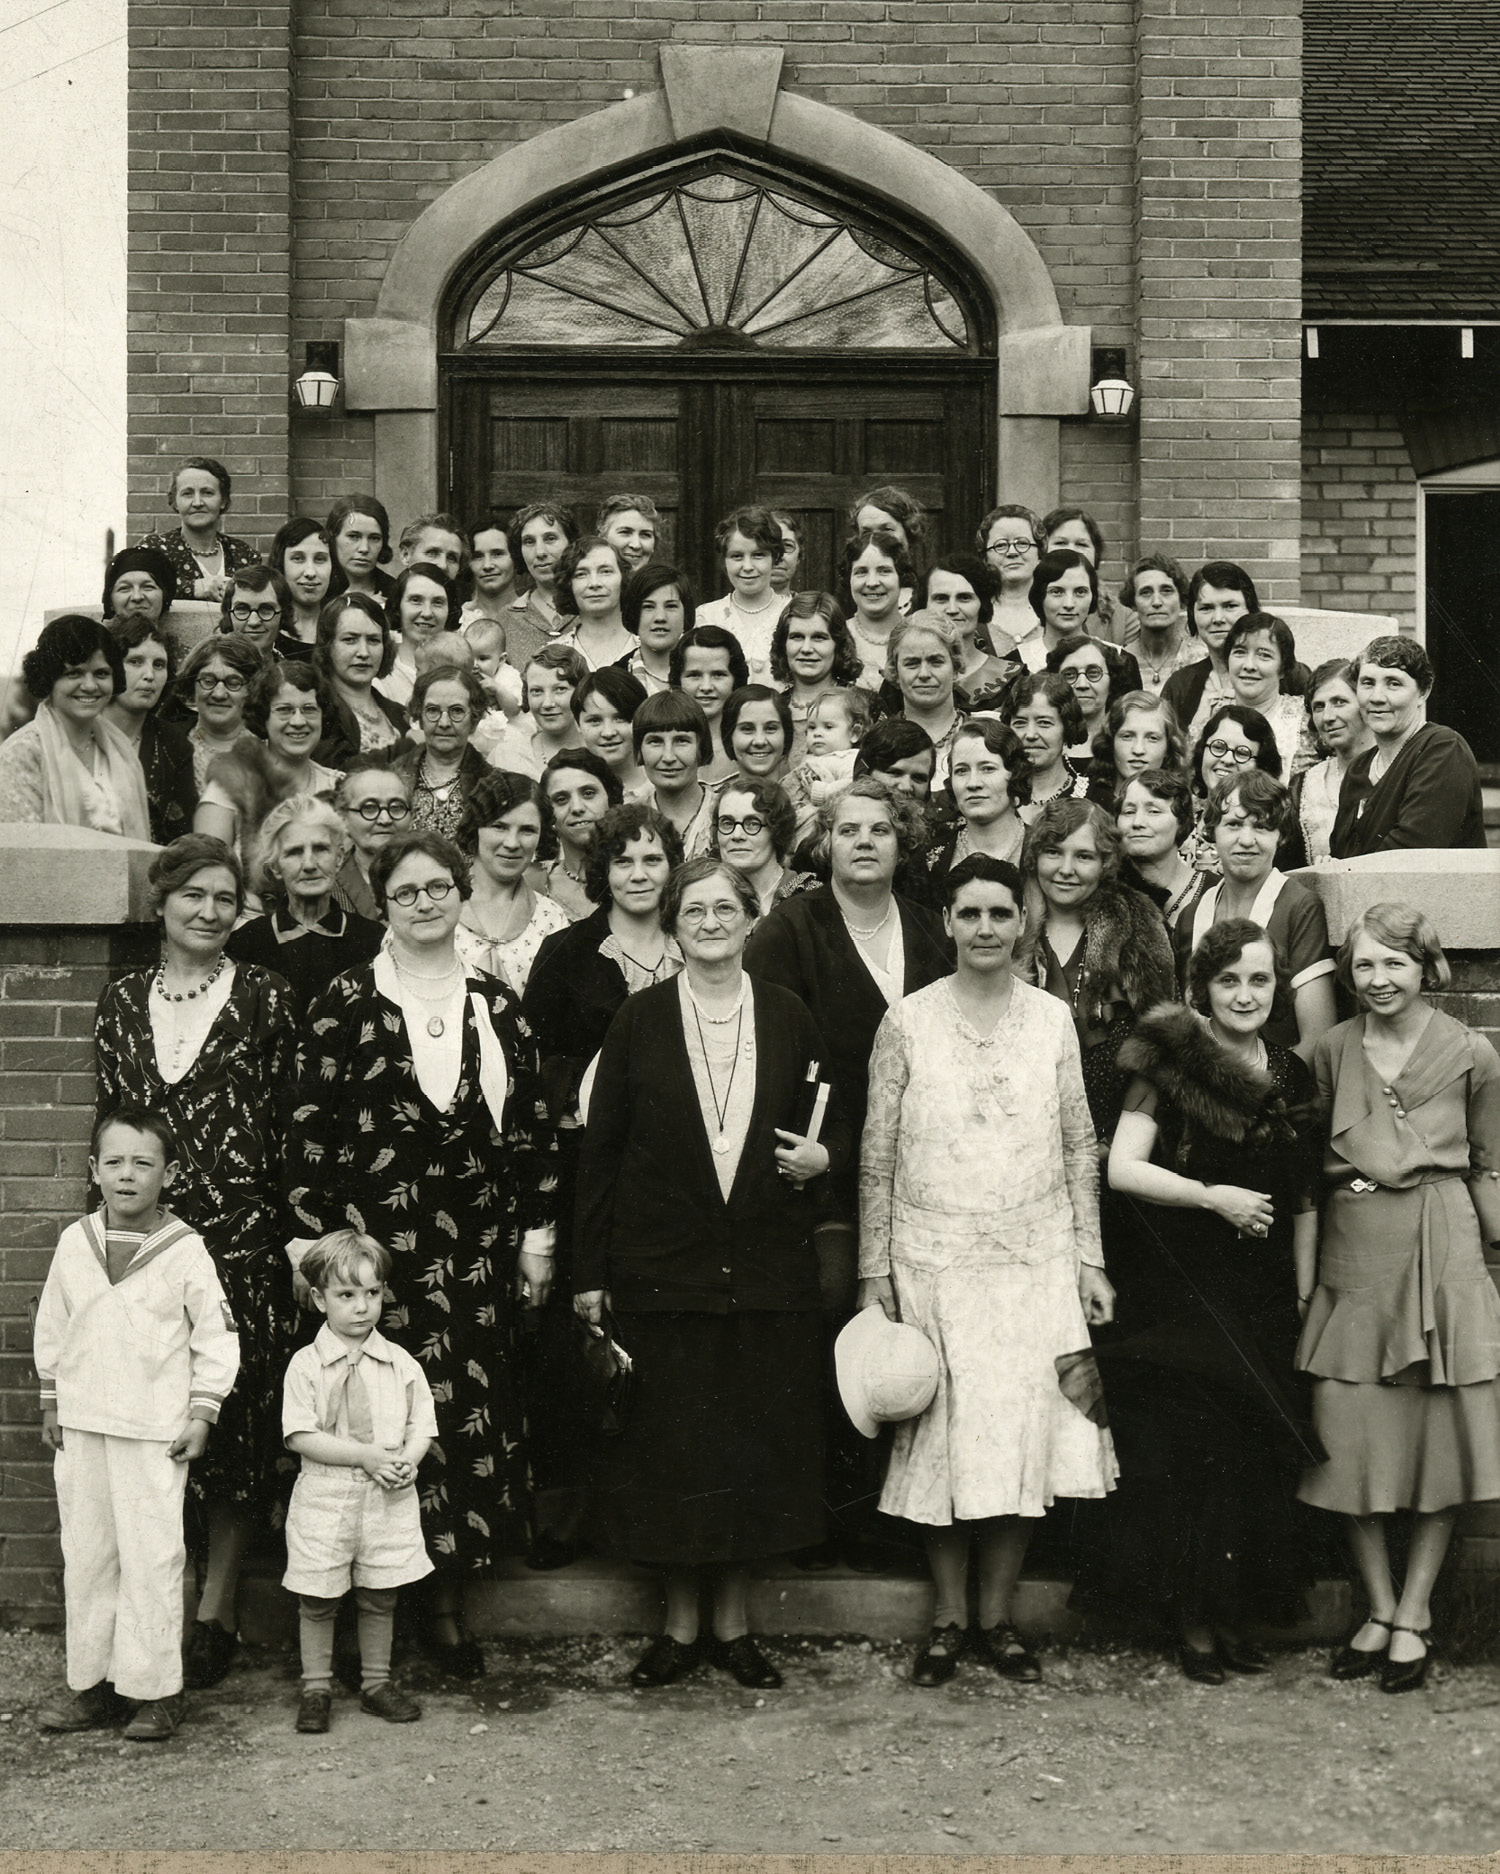 Sister Amy Brown Lyman at Social Service Training in Anaconda, Montana, circa 1920. Lyman, bespec- tacled in the center of the front row, became a trained social worker after formative visits to Hull House in Chicago and was a leader in implementing social service work within the Relief Society. Sister Lyman served on the Relief Society general board for 36 years, including her time as president. Photograph by Montgomery Studio.